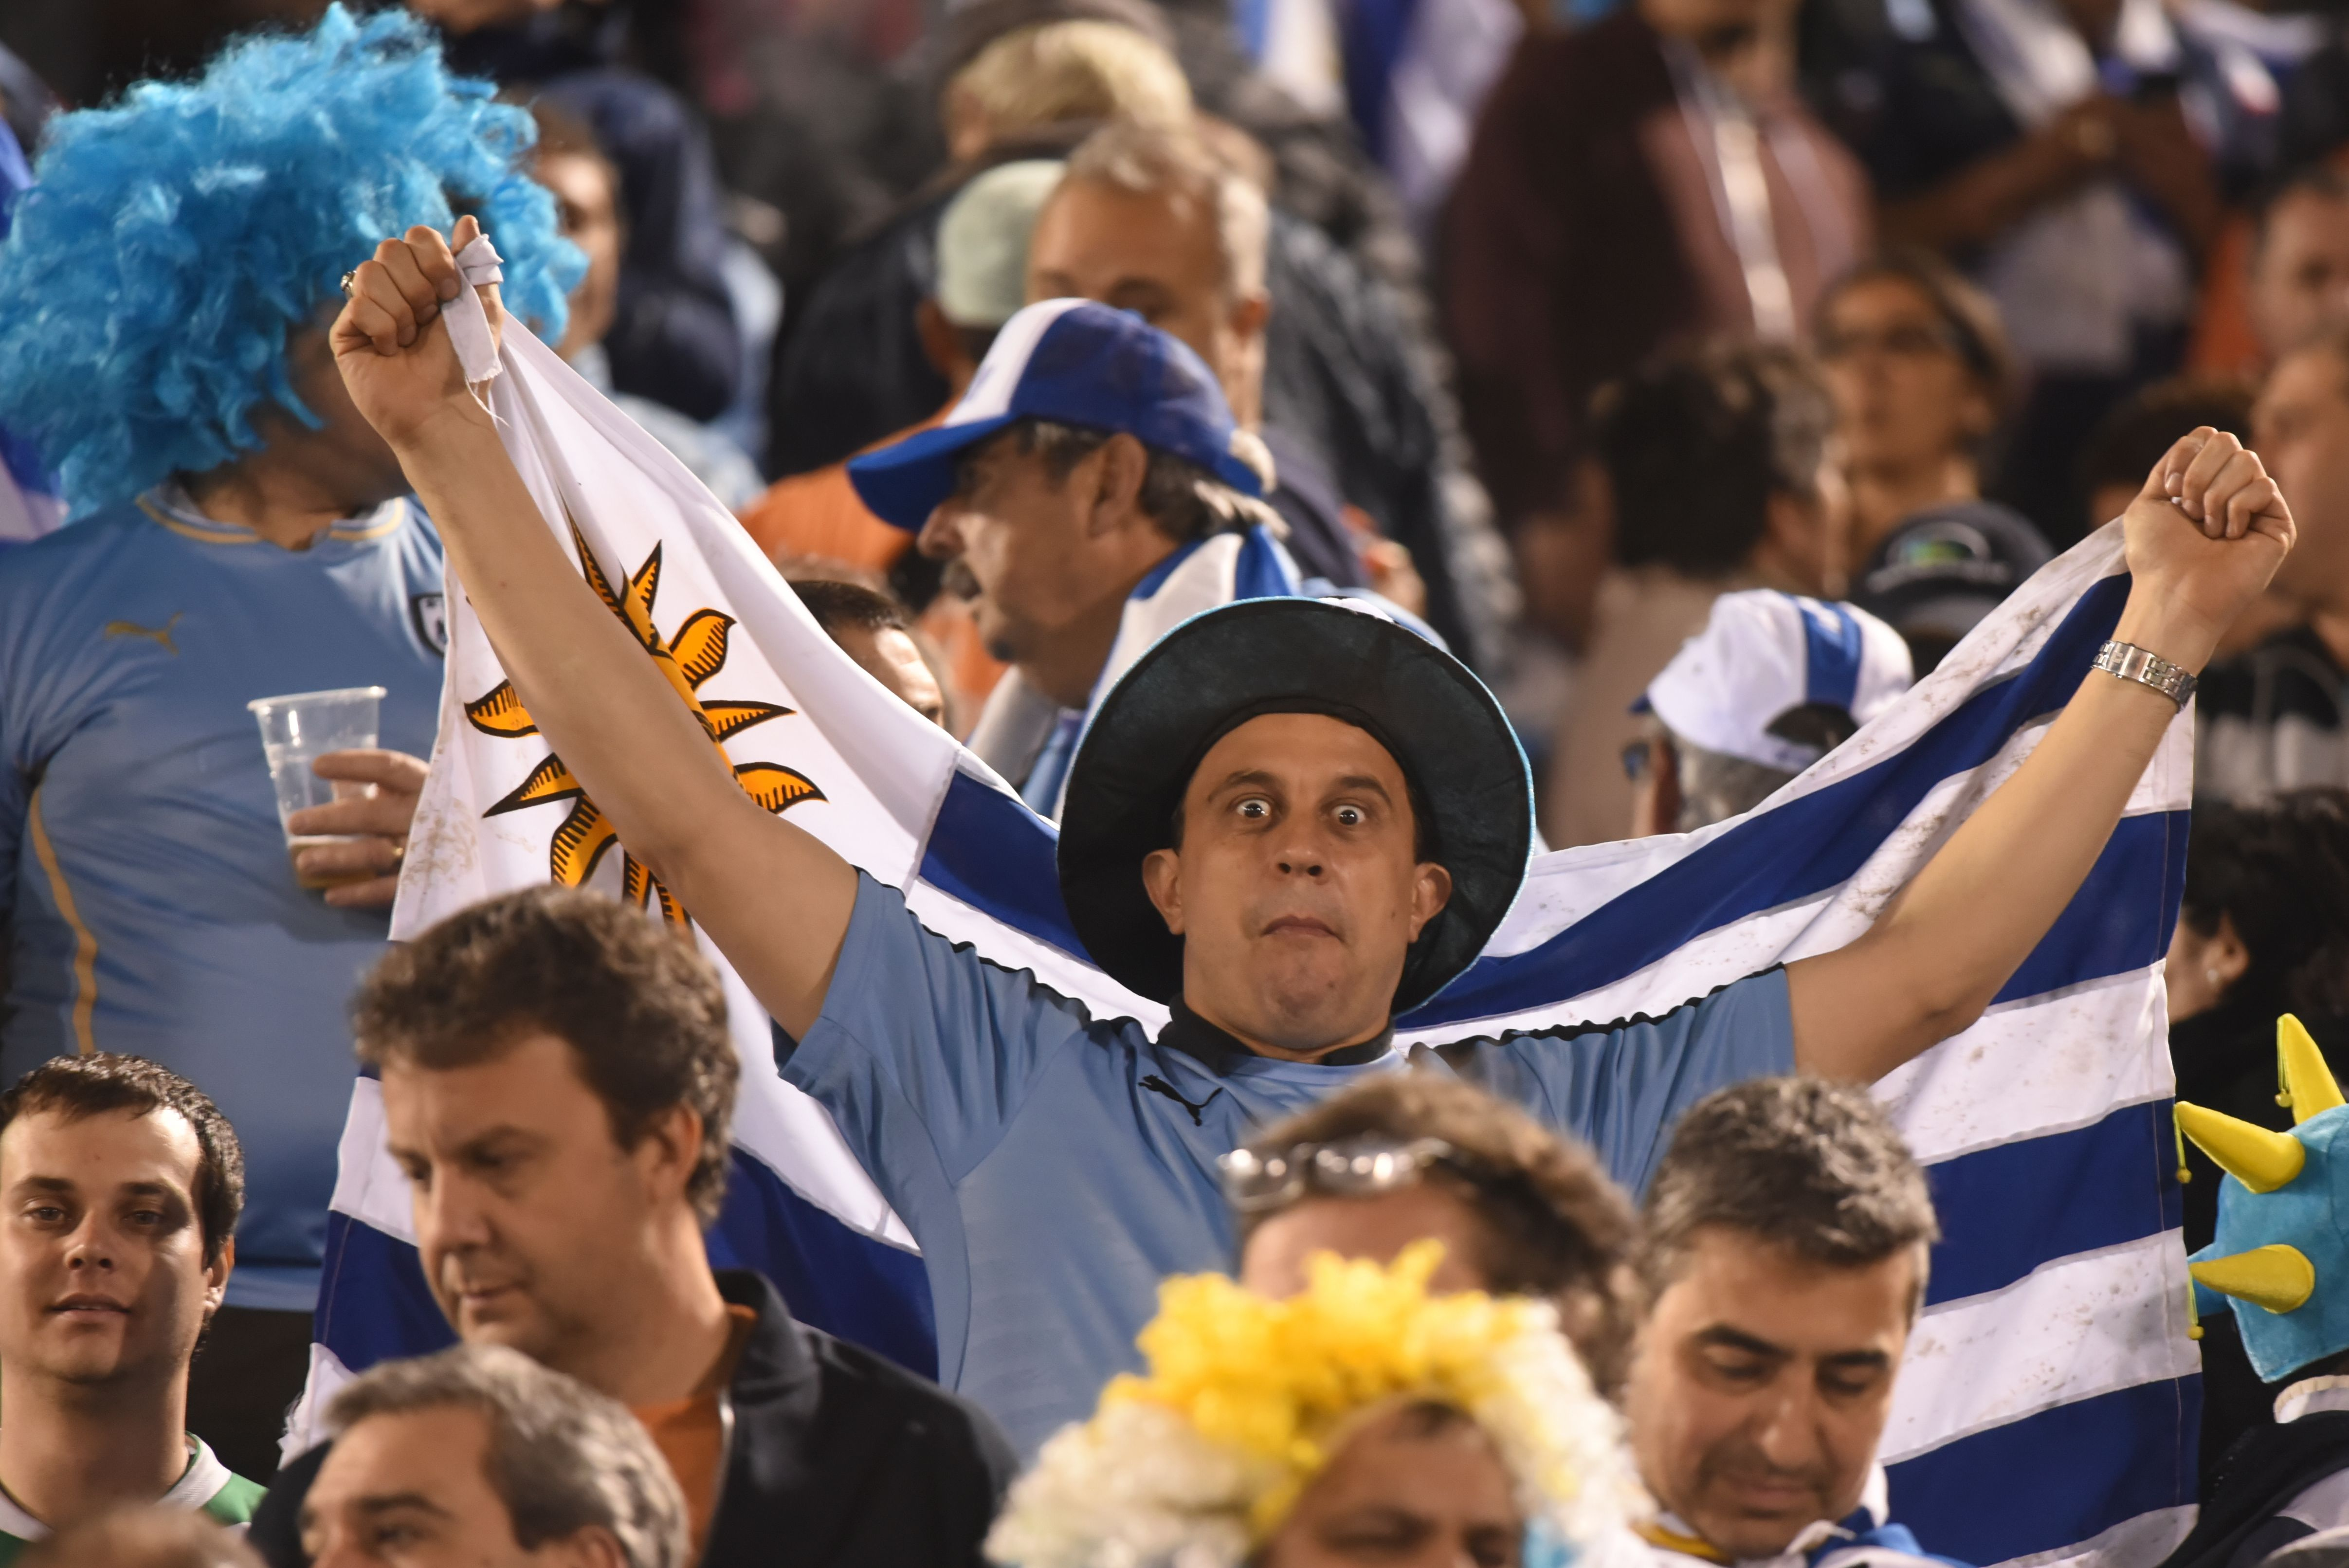 A supporter of Uruguay waits for the start of the 2018 World Cup football qualifier match between Paraguay and Uruguay in Asuncion, on September 5, 2017. / AFP PHOTO / FAVIO FALCON        (Photo credit should read FAVIO FALCON/AFP/Getty Images)